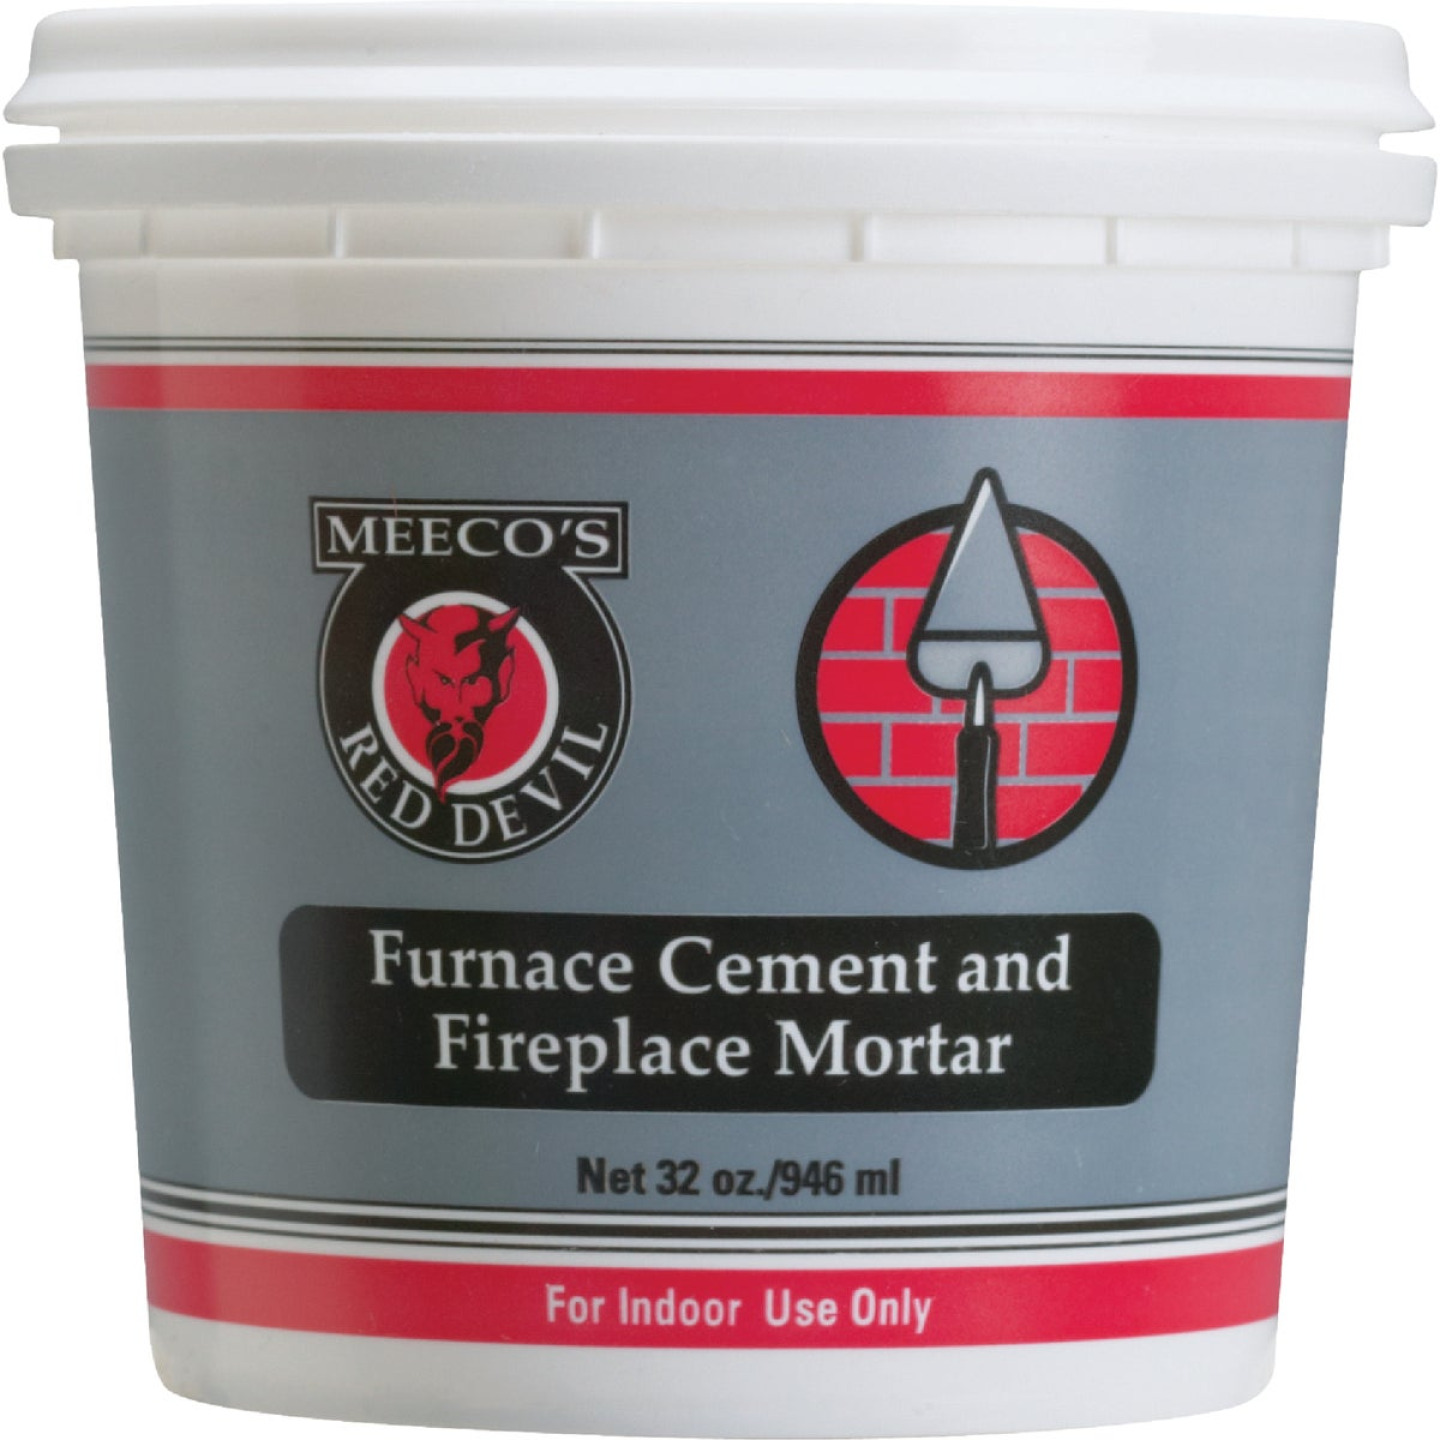 Meeco's Red Devil 1 Qt. Gray Furnace Cement & Fireplace Mortar Image 1